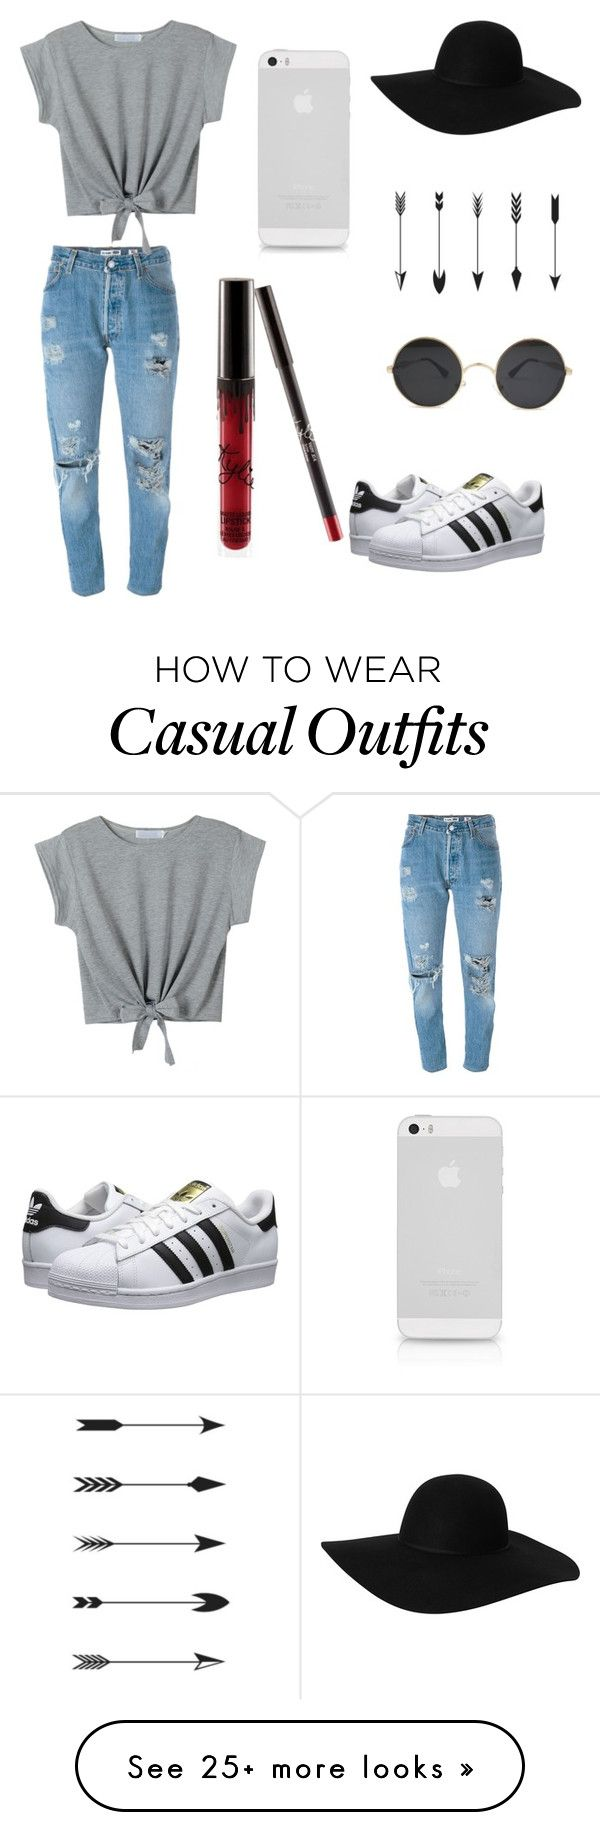 Casual by emibruno on Polyvore featuring Levis, Monki, WithChic, adidas Originals, cool and women